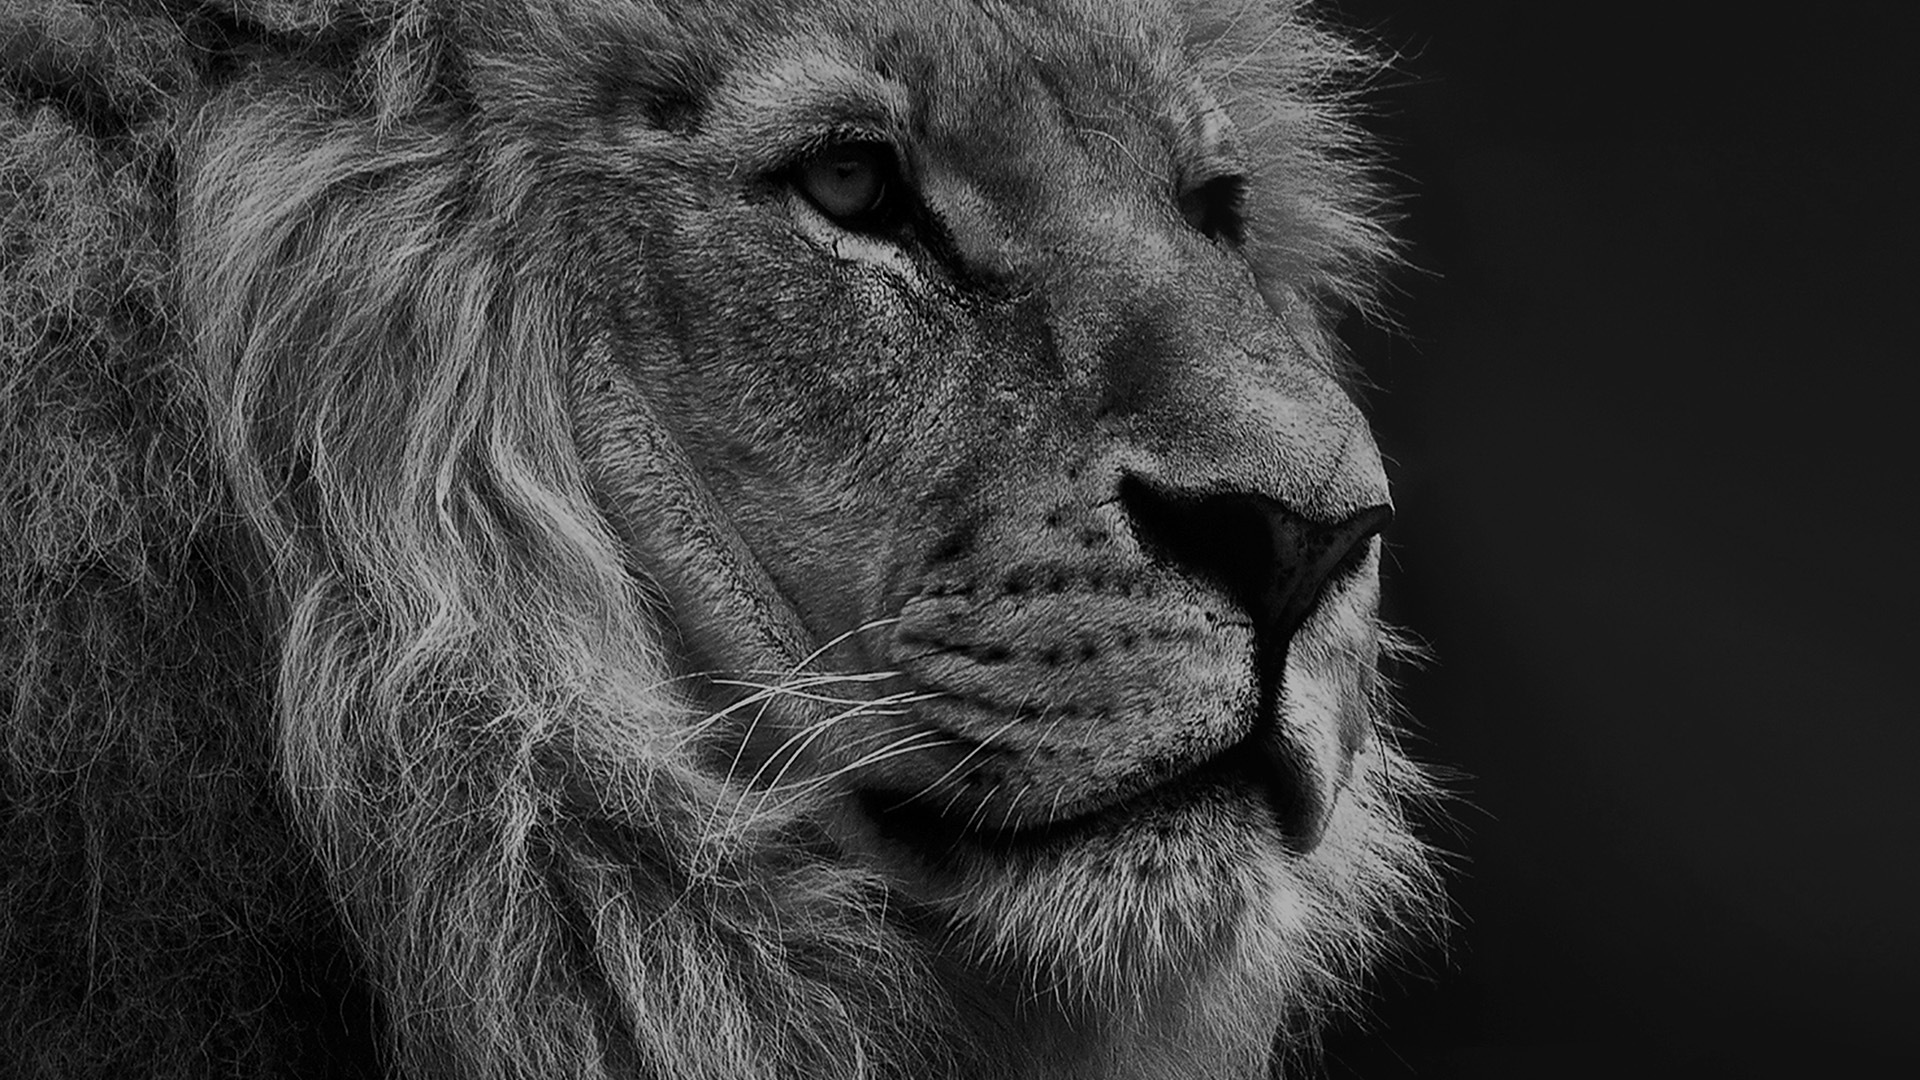 Samsung Car Wallpaper Mu48 National Geographic Nature Animal Lion Dark Bw